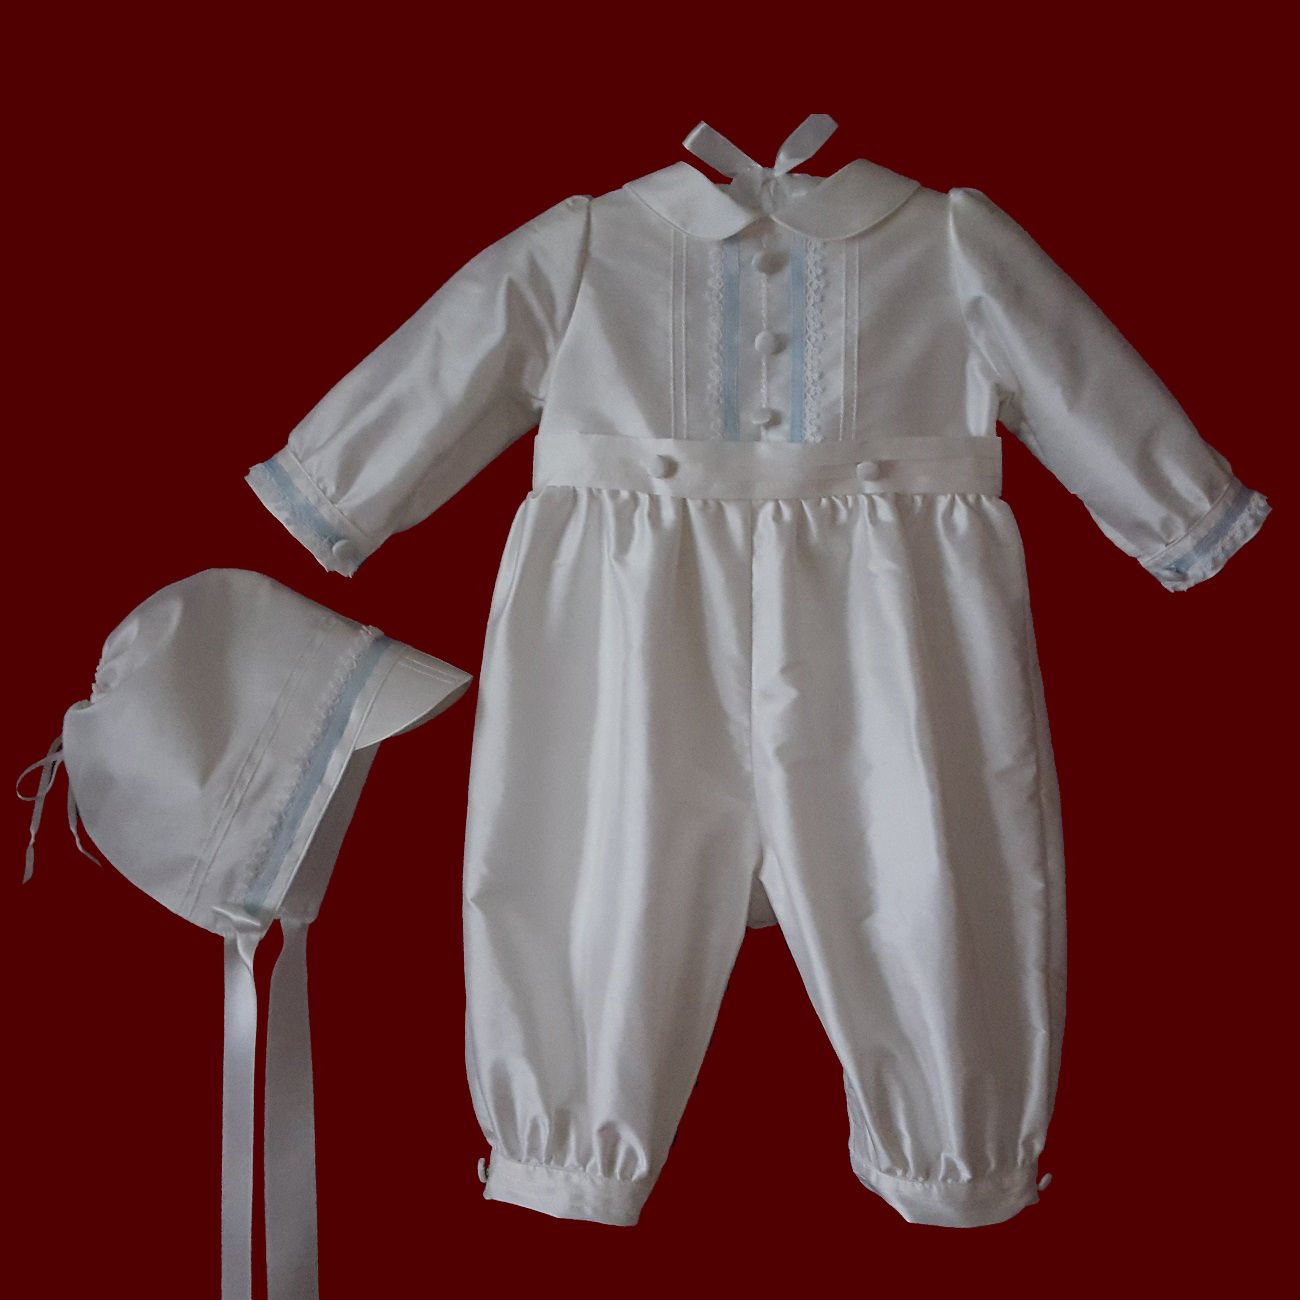 ba1bf8487 Click to Enlarge Picture - Boys Silk Christening Romper With Ribbon and  Tatting & Matching Hat